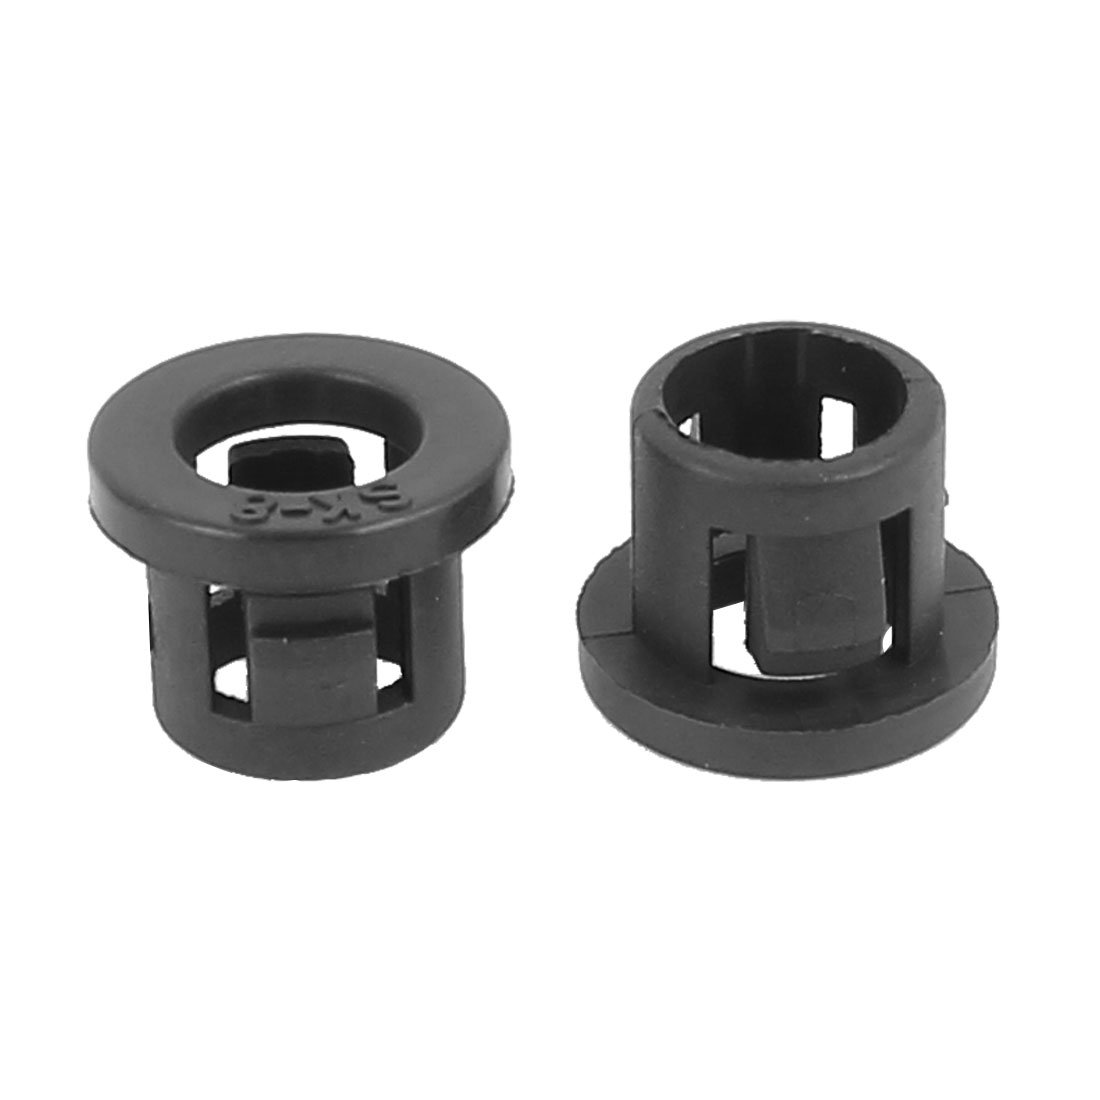 uxcell 15pcs 30mm Mounted Dia Cable Hose Snap Bushing Grommet Protector Black